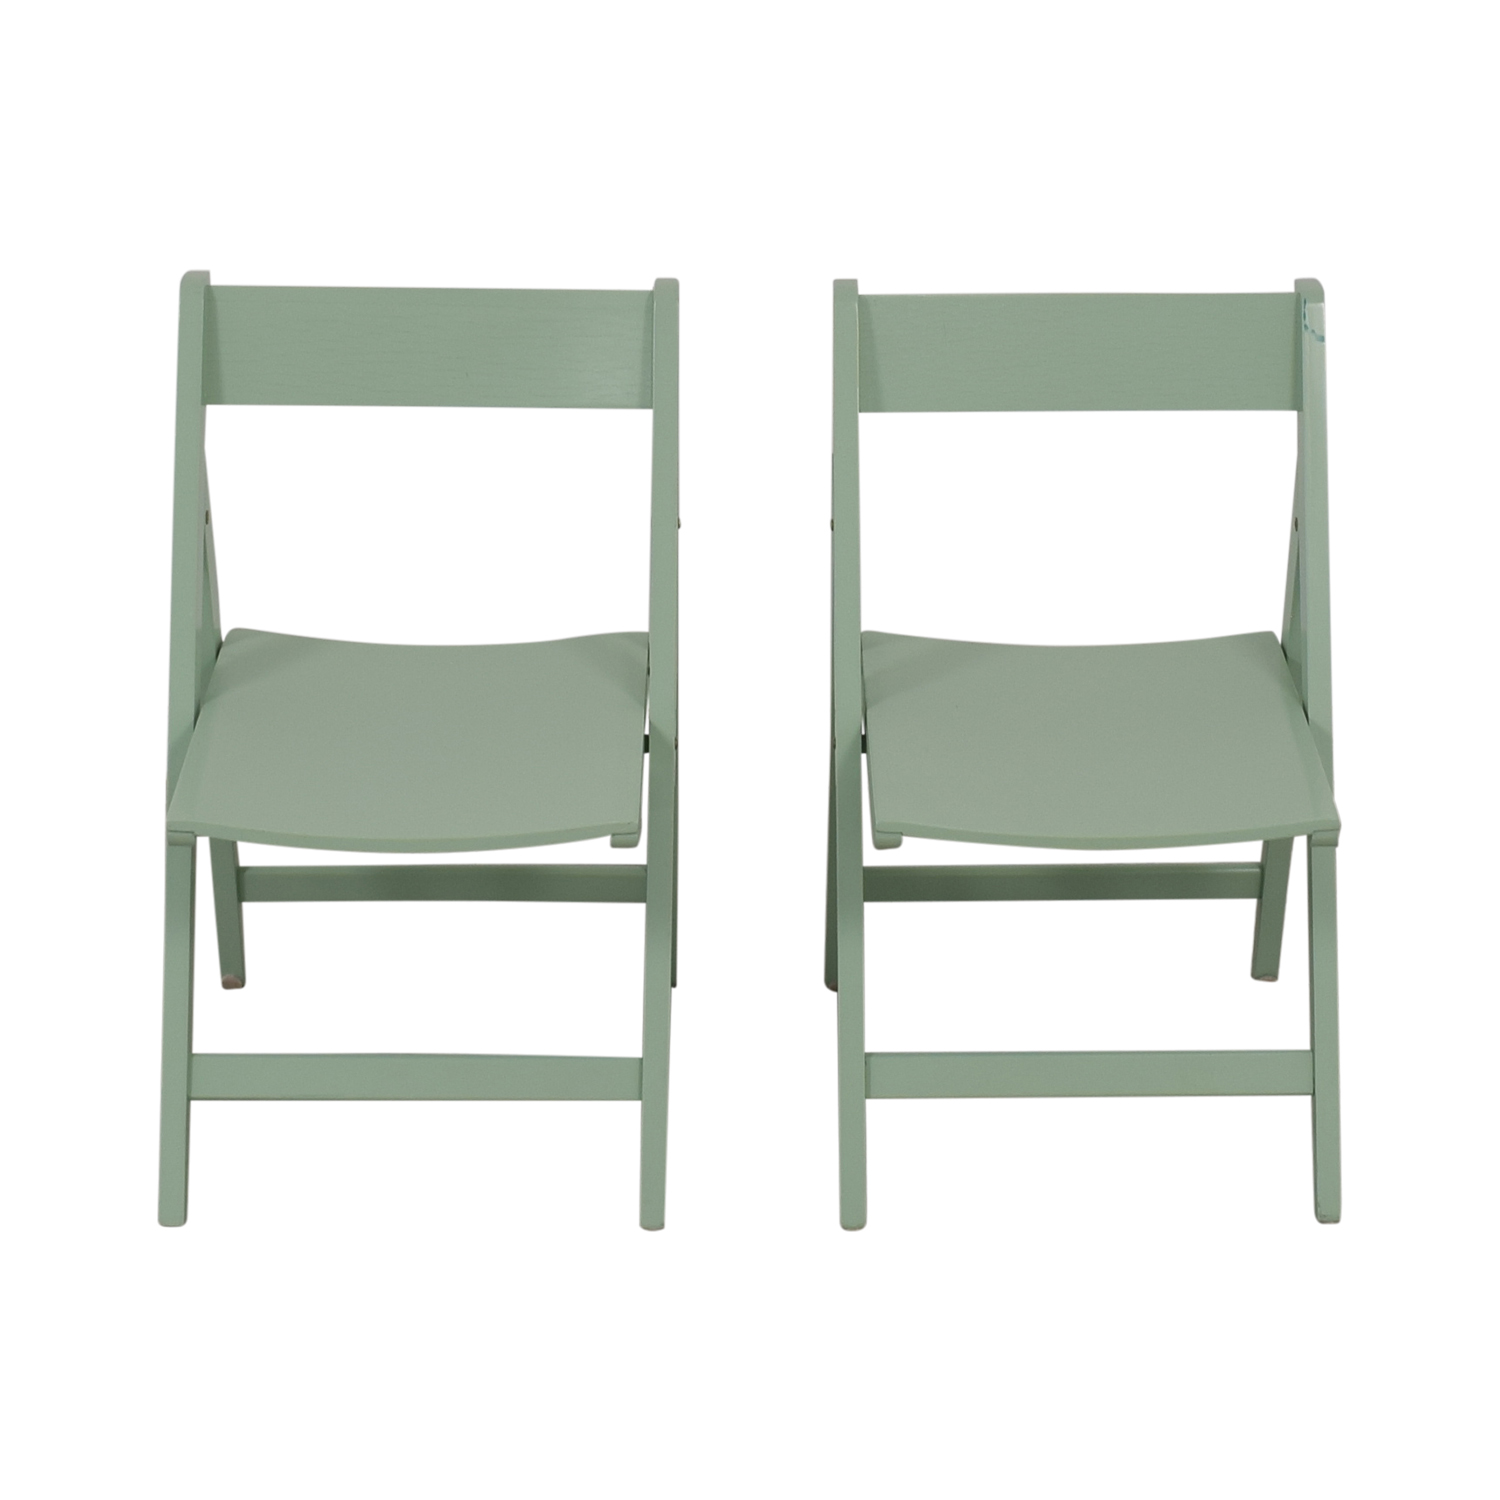 Mint Green Folding Chairs Chairs